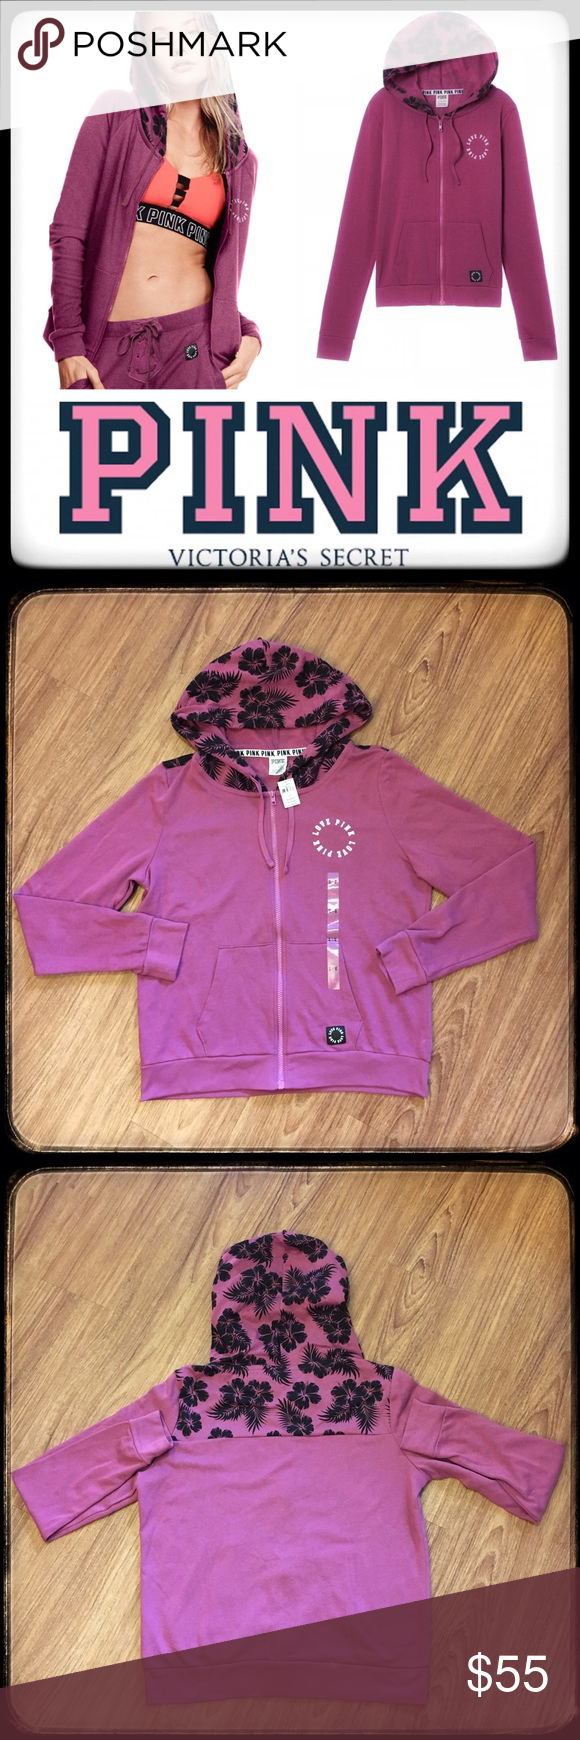 Pink Victoria S Secret Bayberry Hoodie Nwt Price Firm Unless Bundled 15 Off Of 3 Bundles Same Day Shipping Clothes Design Fashion Pink Zip Ups